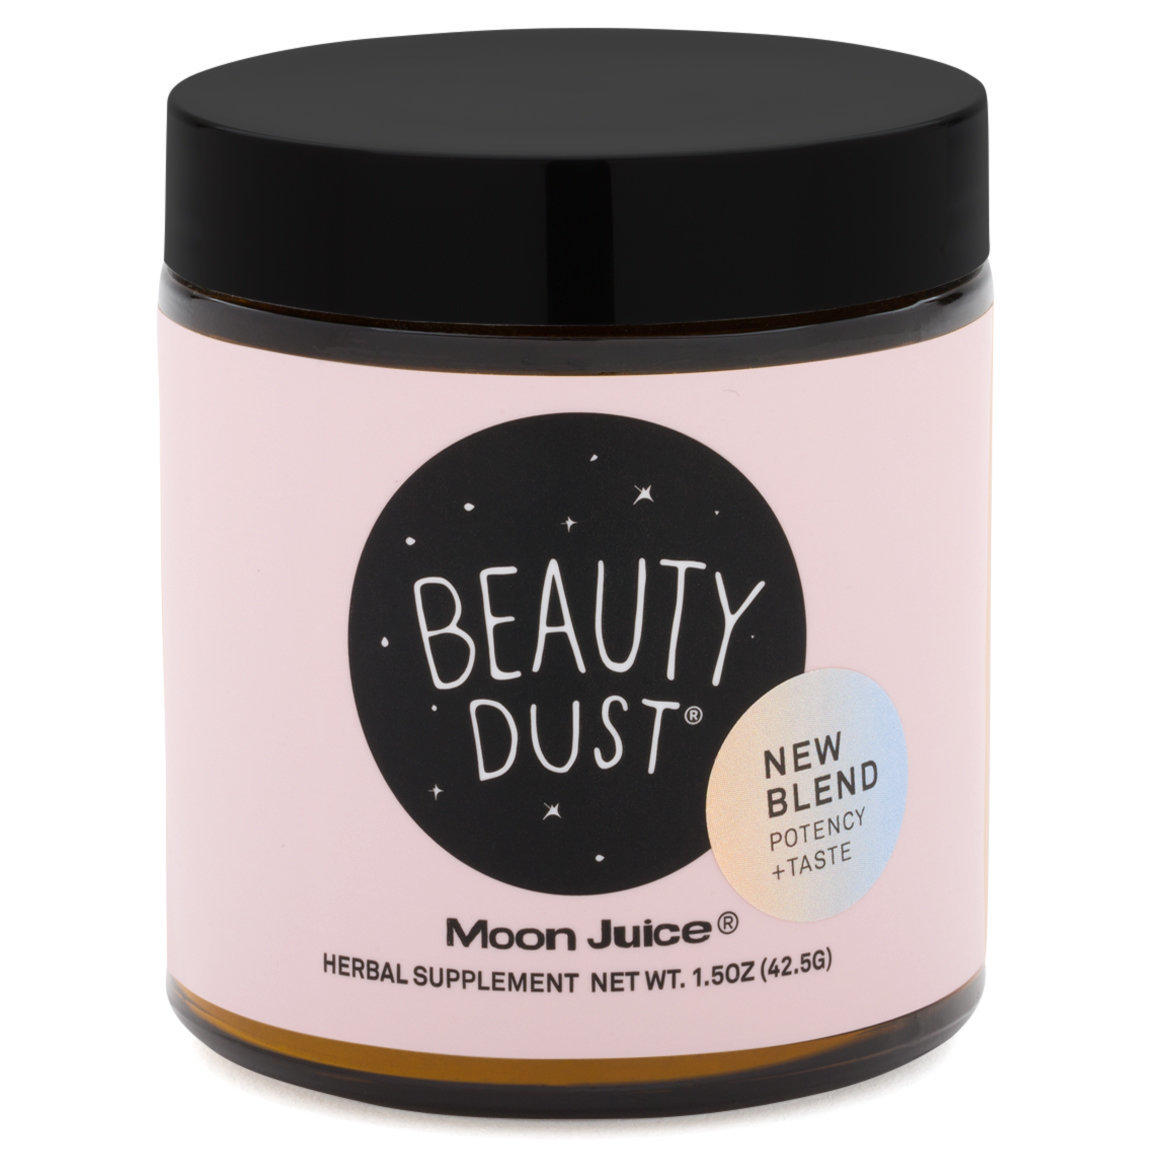 Moon Juice Beauty Dust product smear.